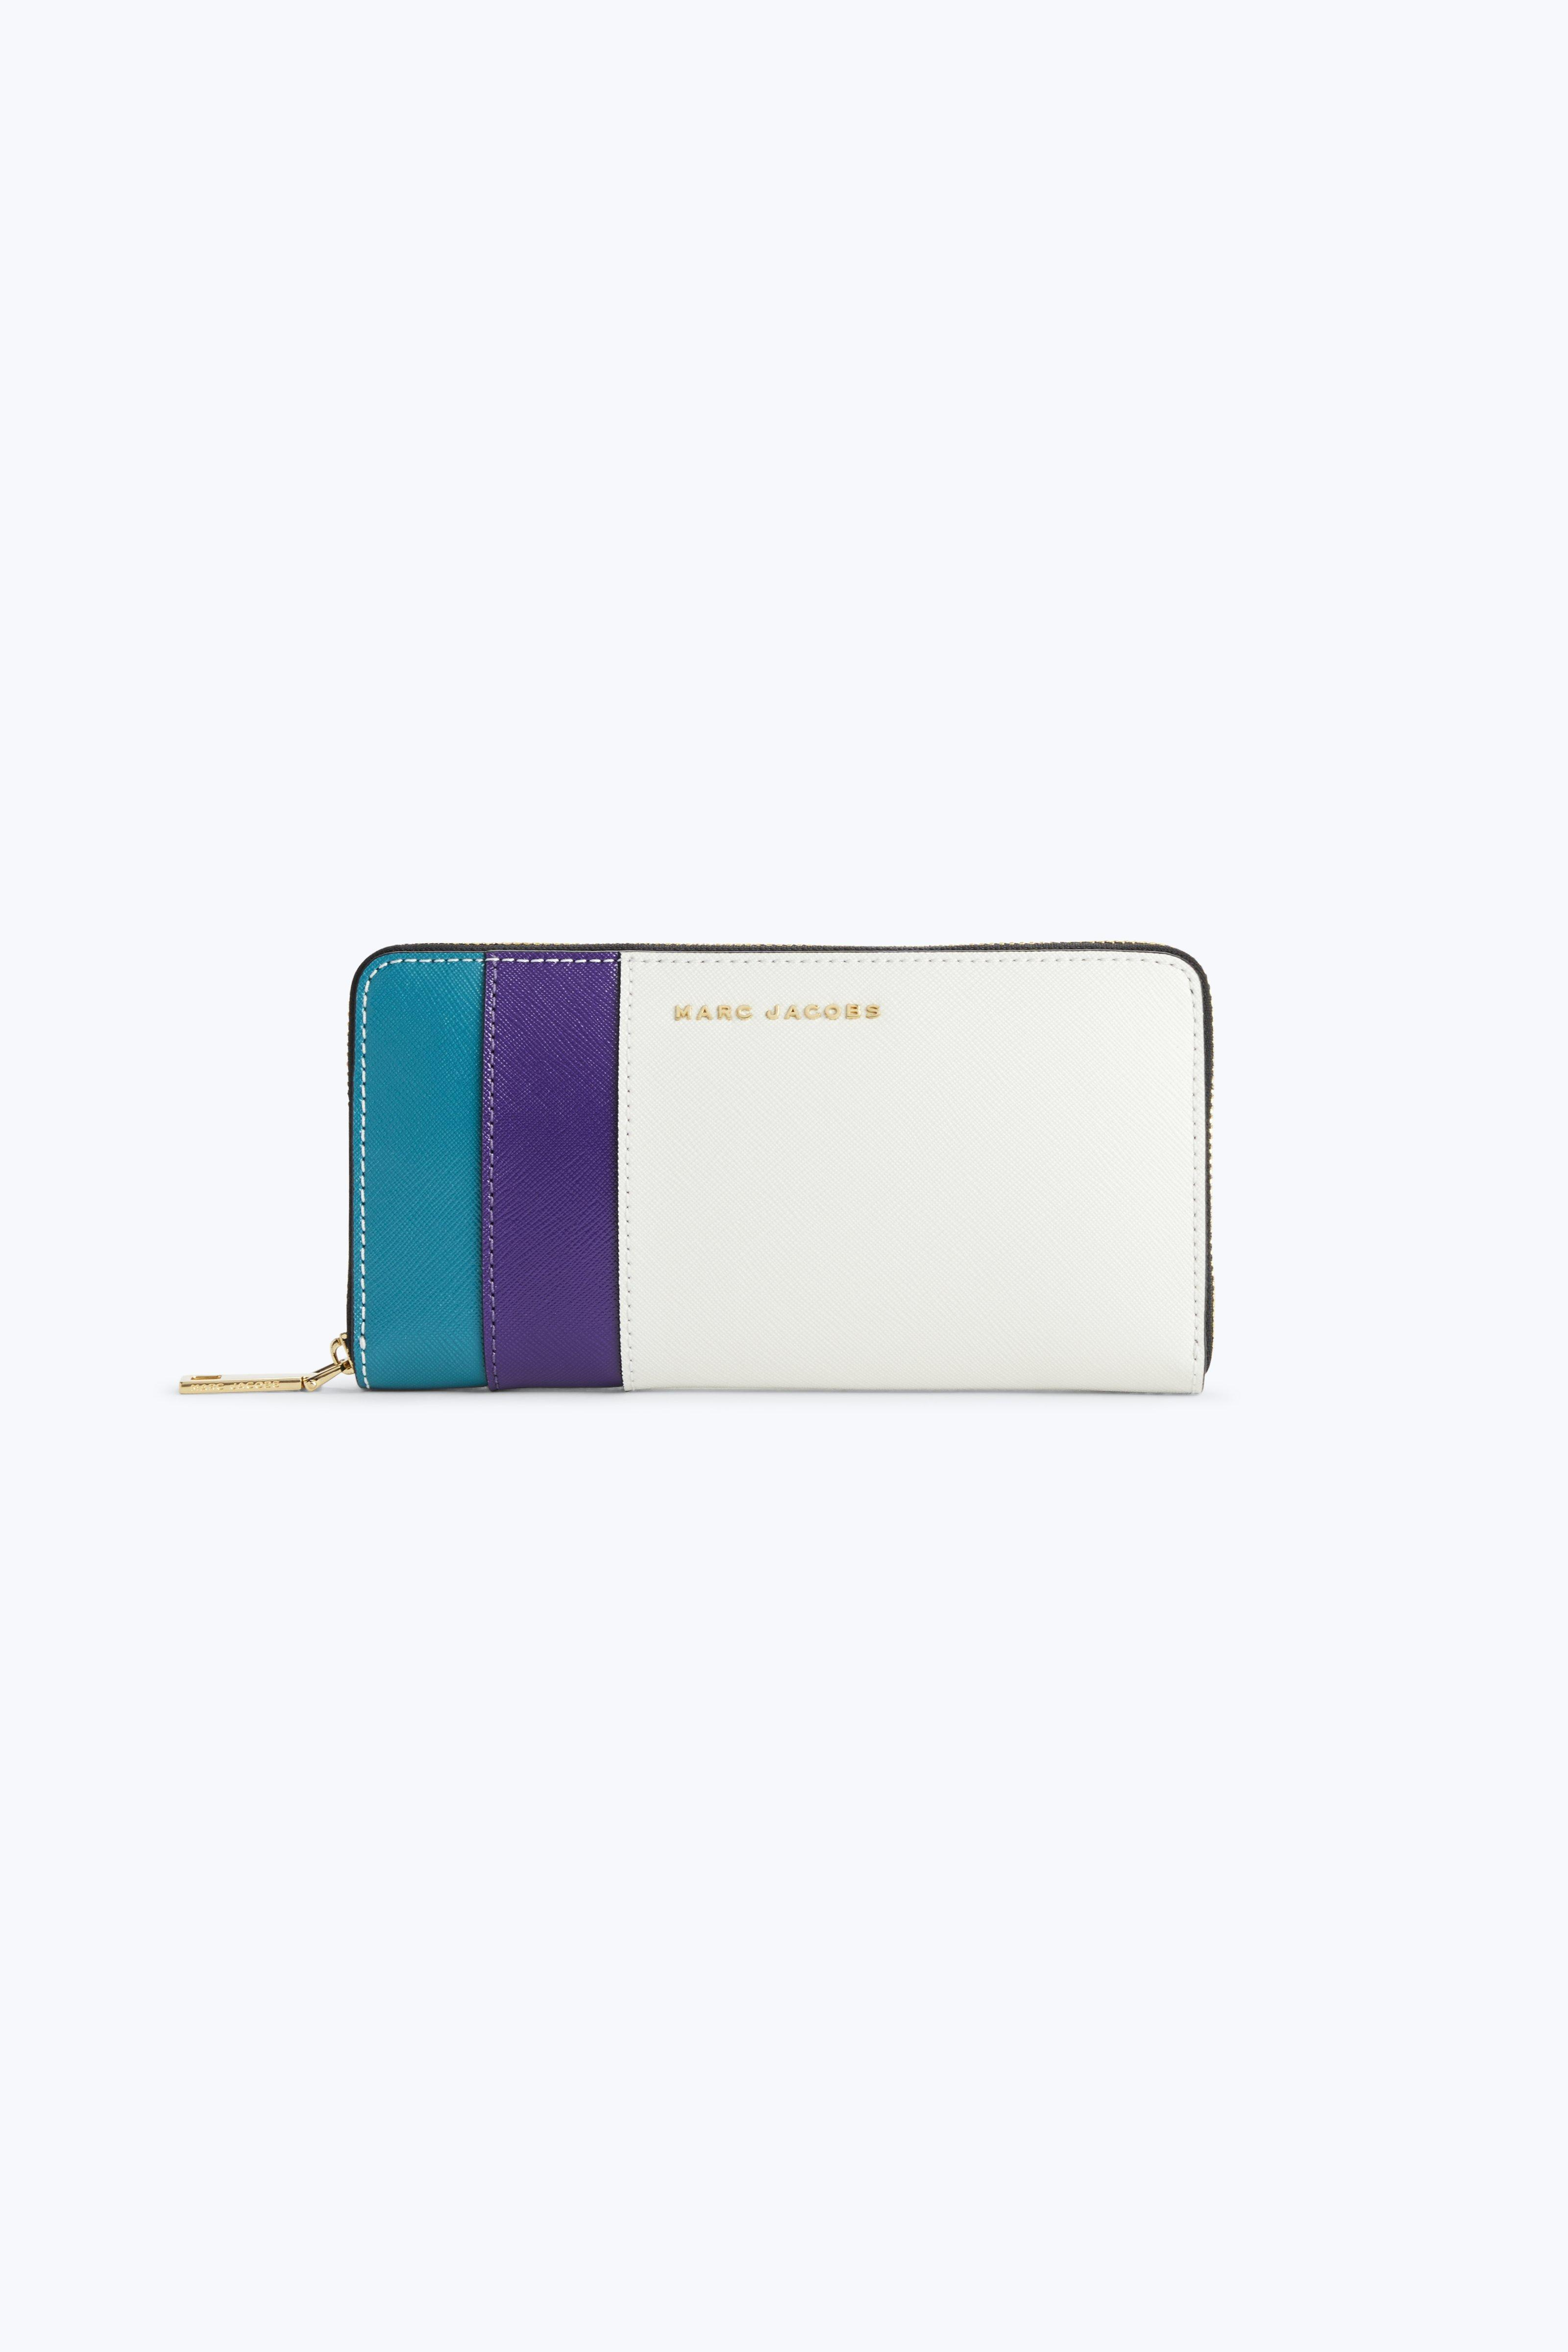 Marc Jacobs Saffiano Colorblocked Standard Continental Wallet In Dove Multi